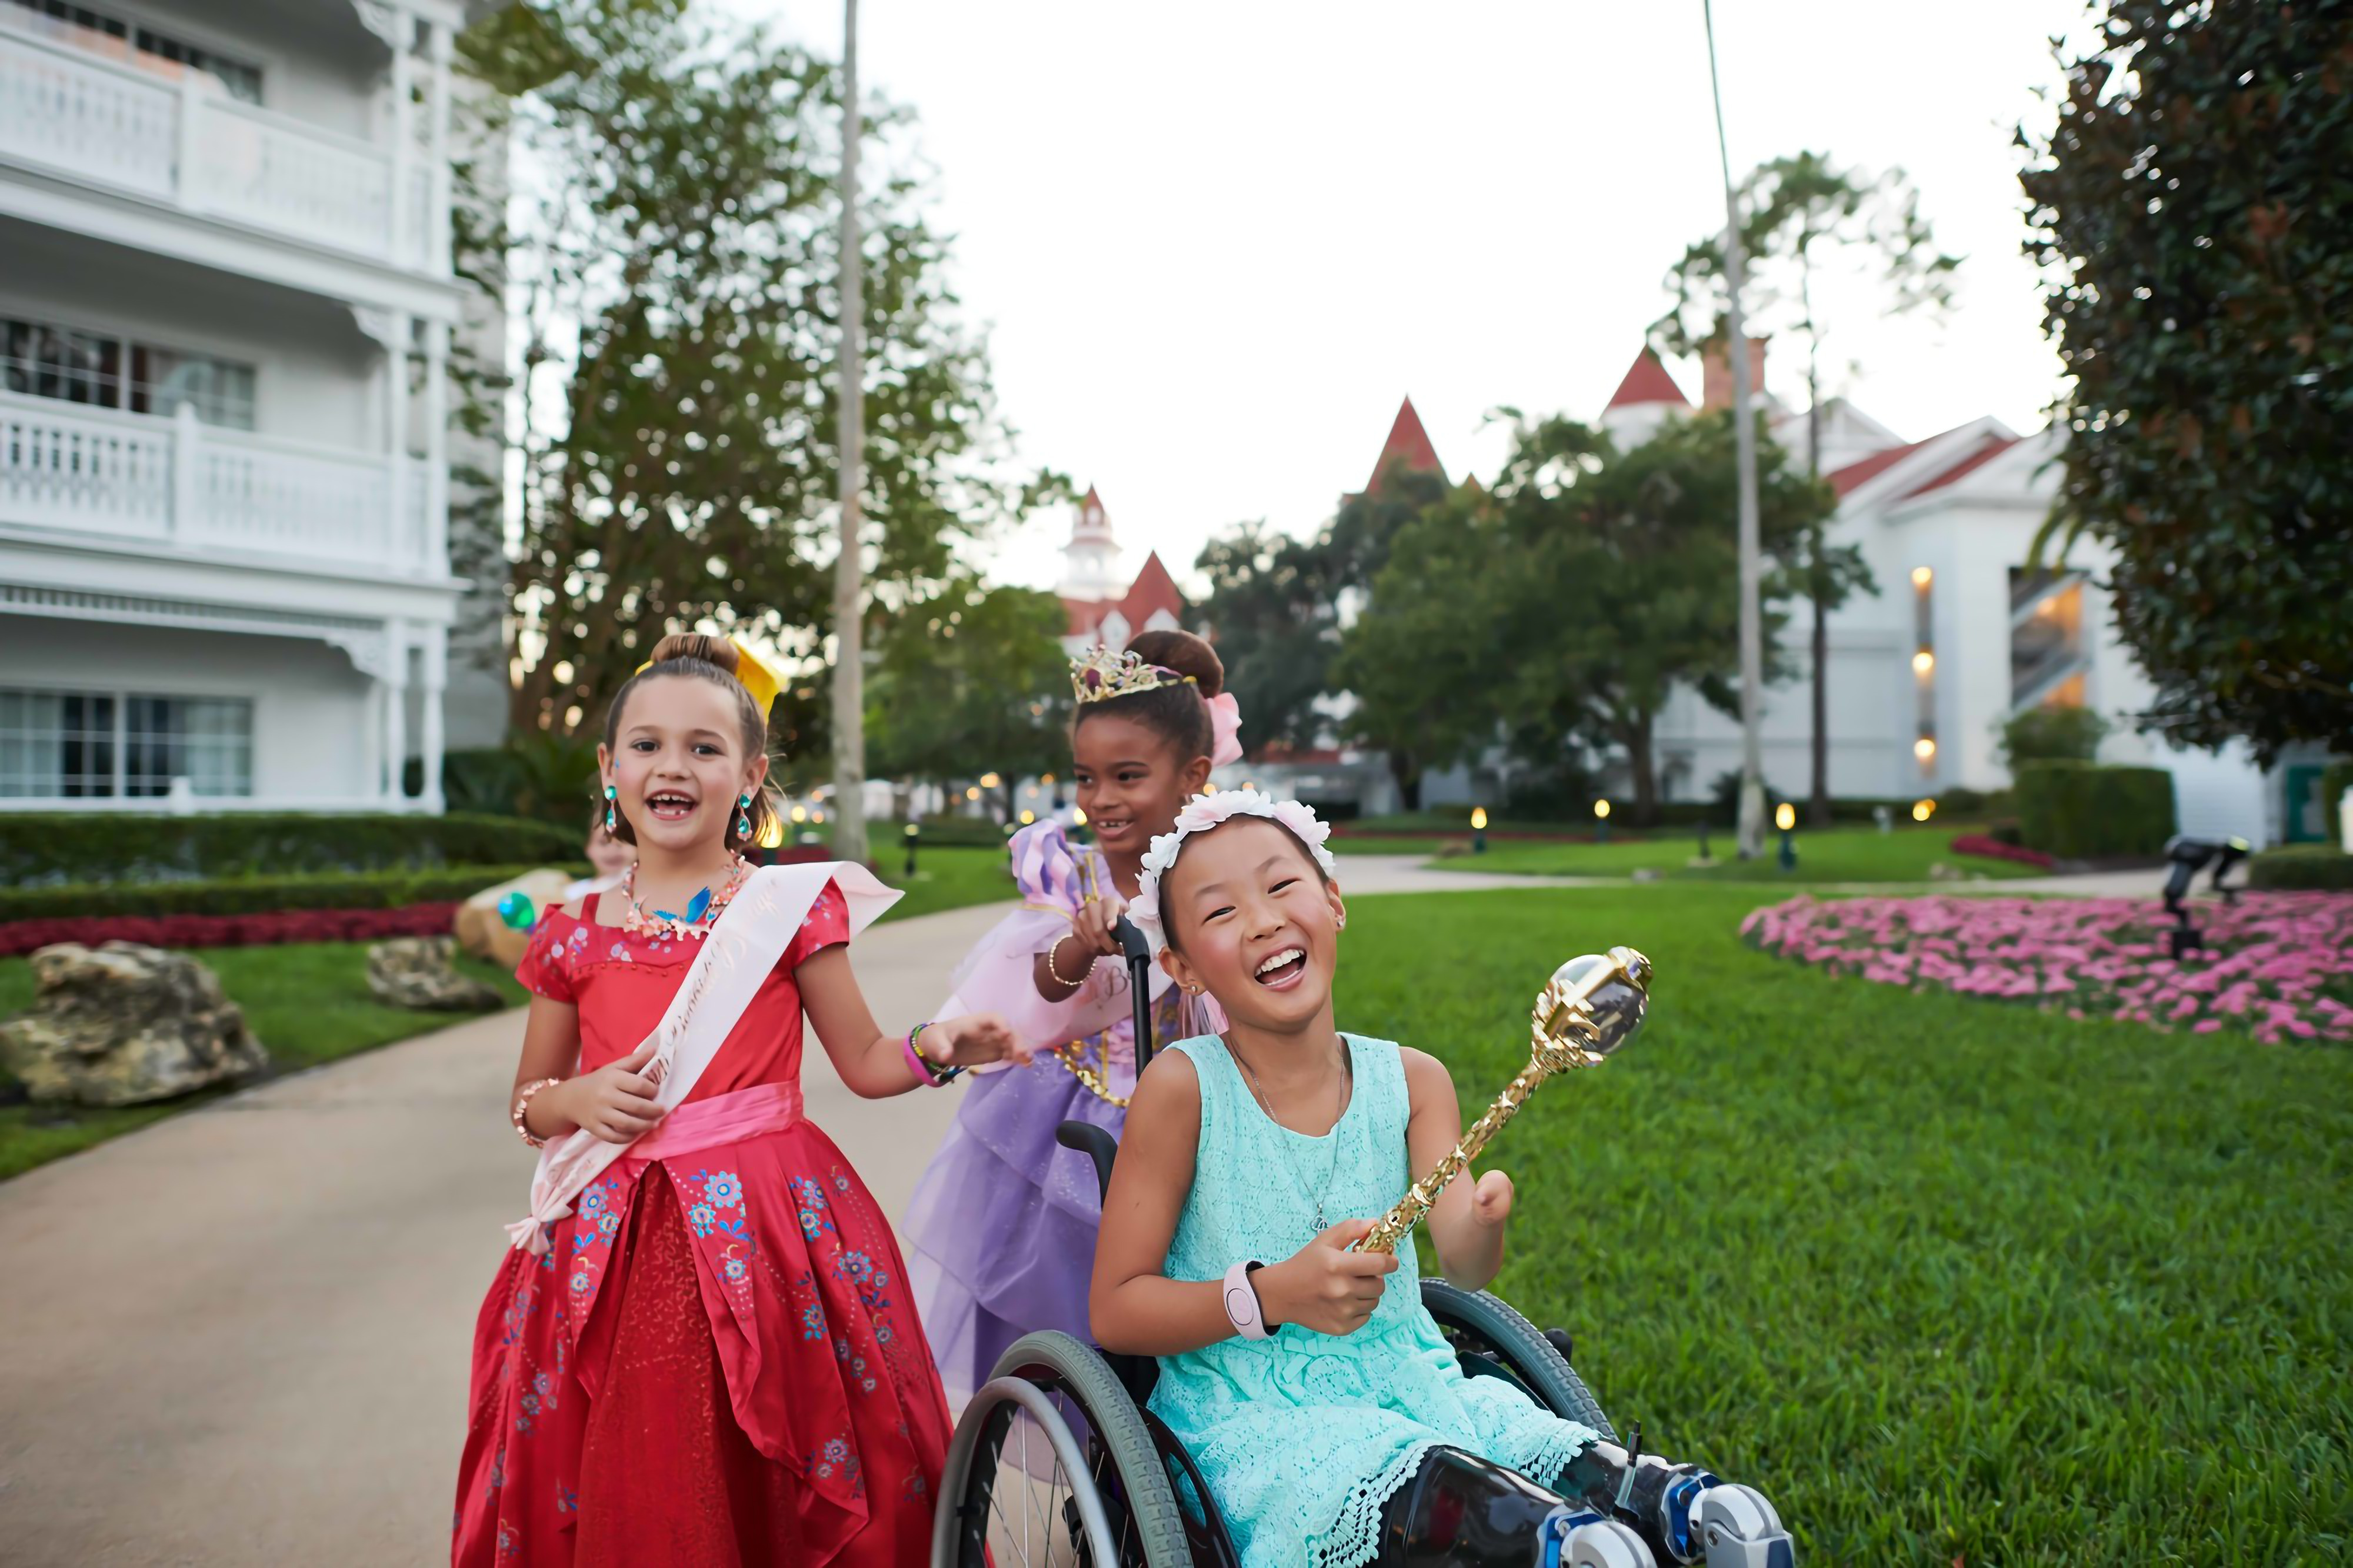 Three little girls in dresses smiling at the camera.